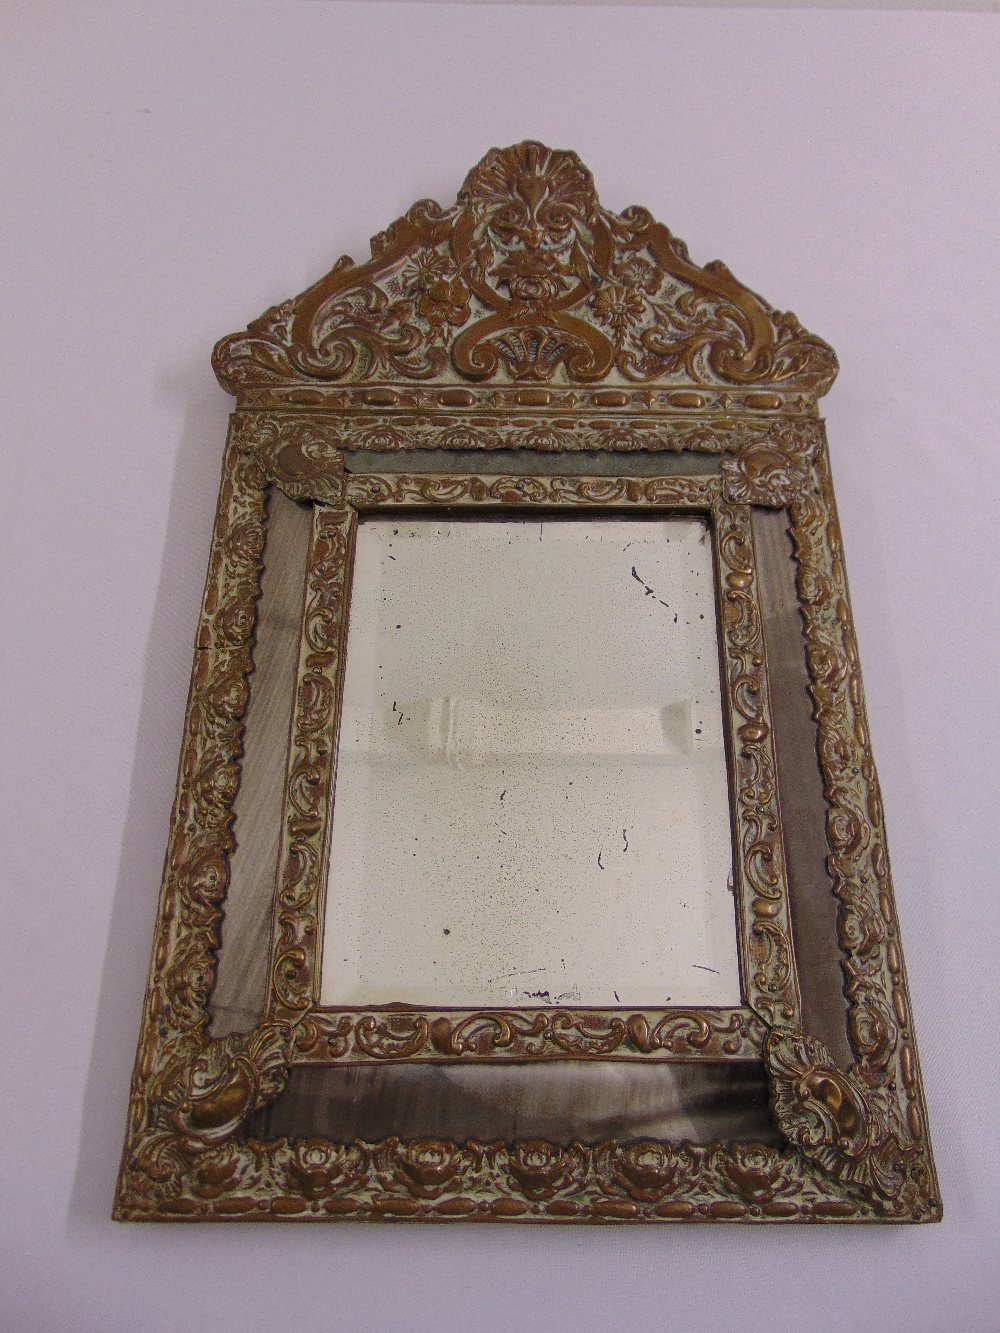 Lot 20 - A 19th century continental brass wall mirror with five mirrored panels